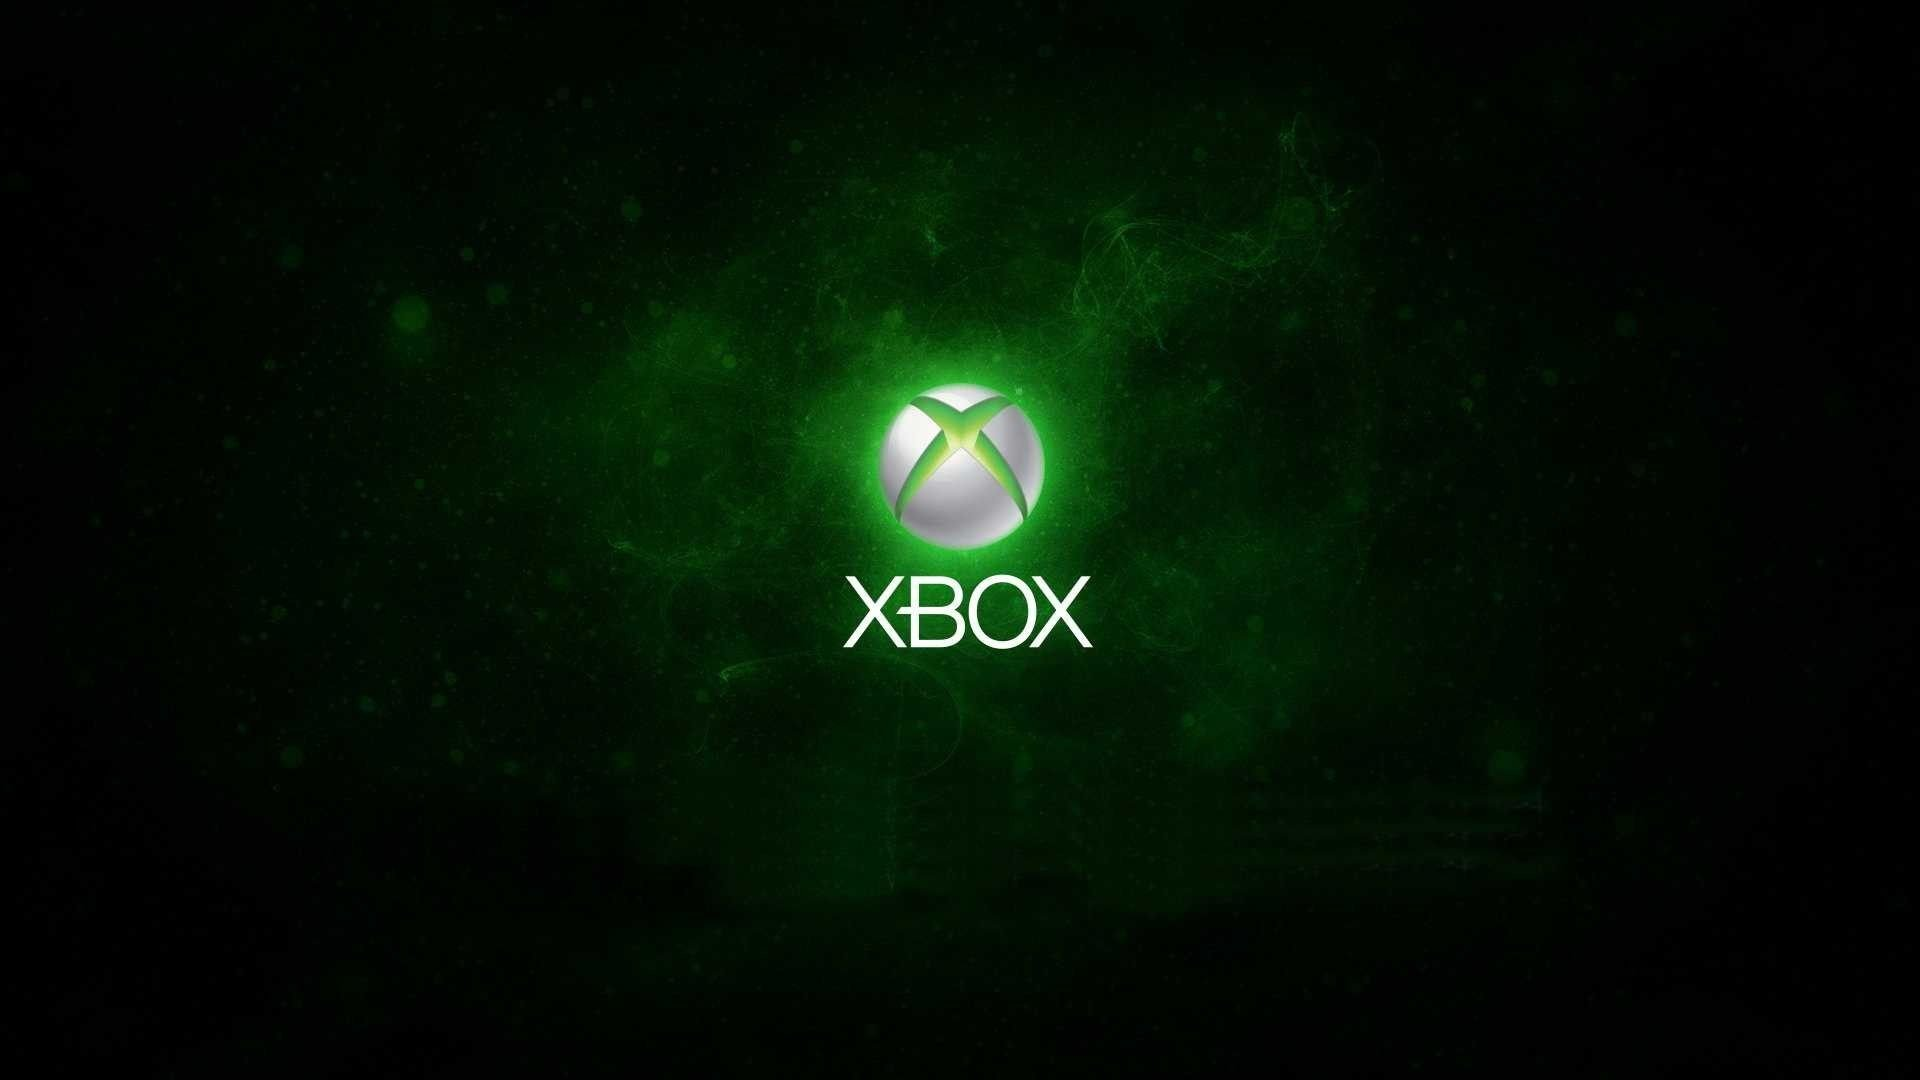 List of Exclusive Games Coming to Xbox Consoles - Core Xbox